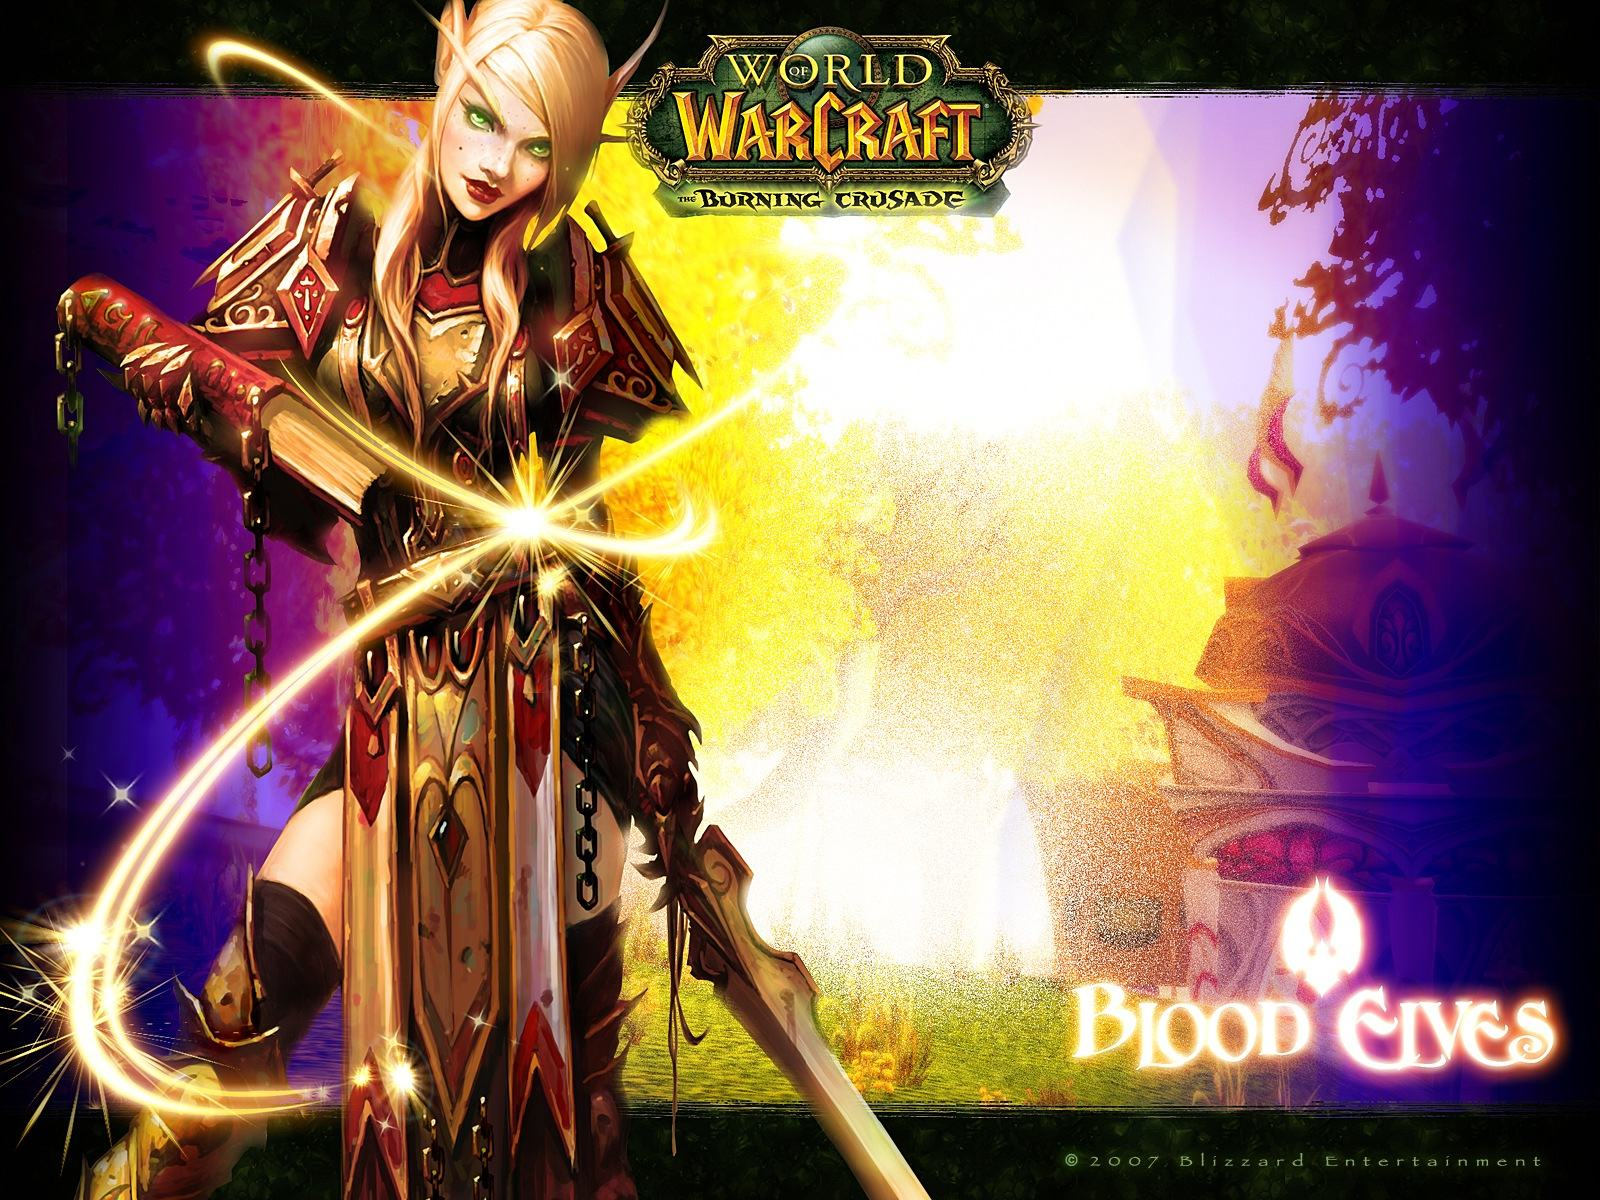 Обои World of Warcraft: The Butning Crusades (Blood Elves) 1600x1200